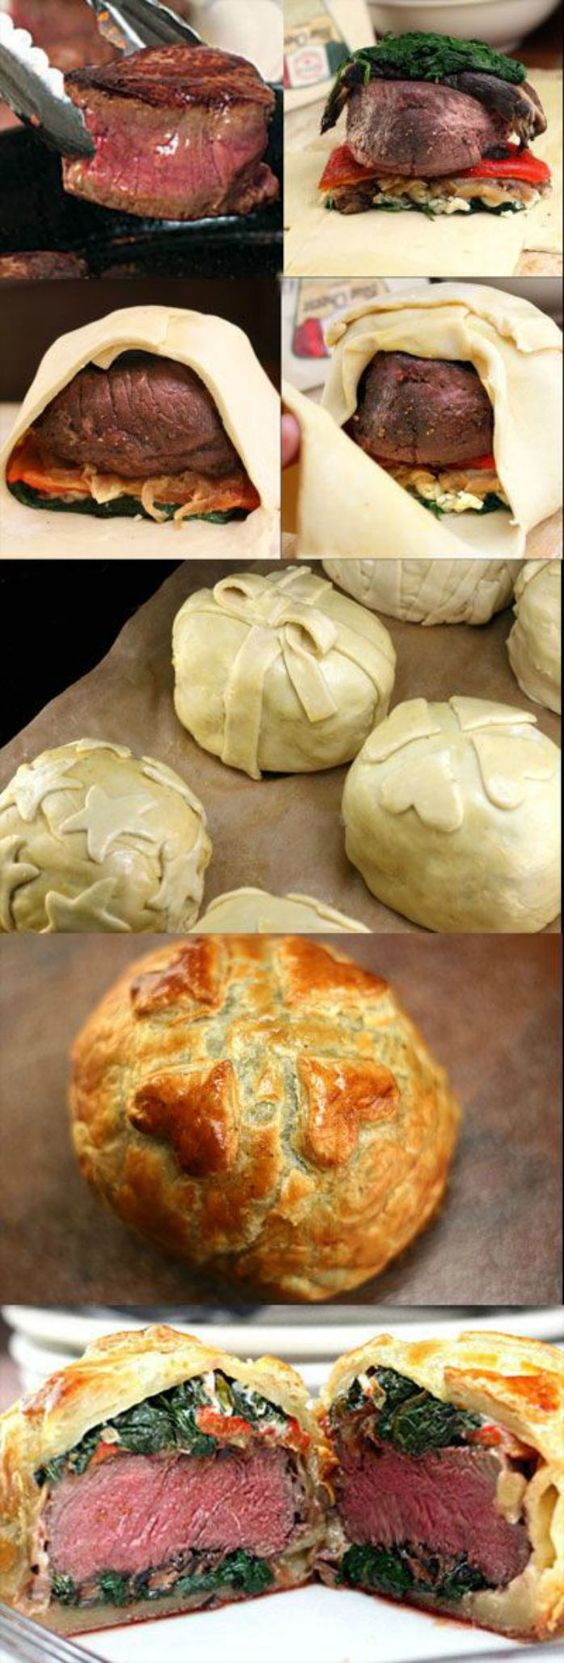 Beef Wellingtons loaded with Mushrooms, Caramelized Onions, Roasted Red Pepper, Spinach & Cheese Filling! #beefwellington #individualbeefwellingtons #beef #caramelizedonions #roastedredpepper #cheese #mushrooms